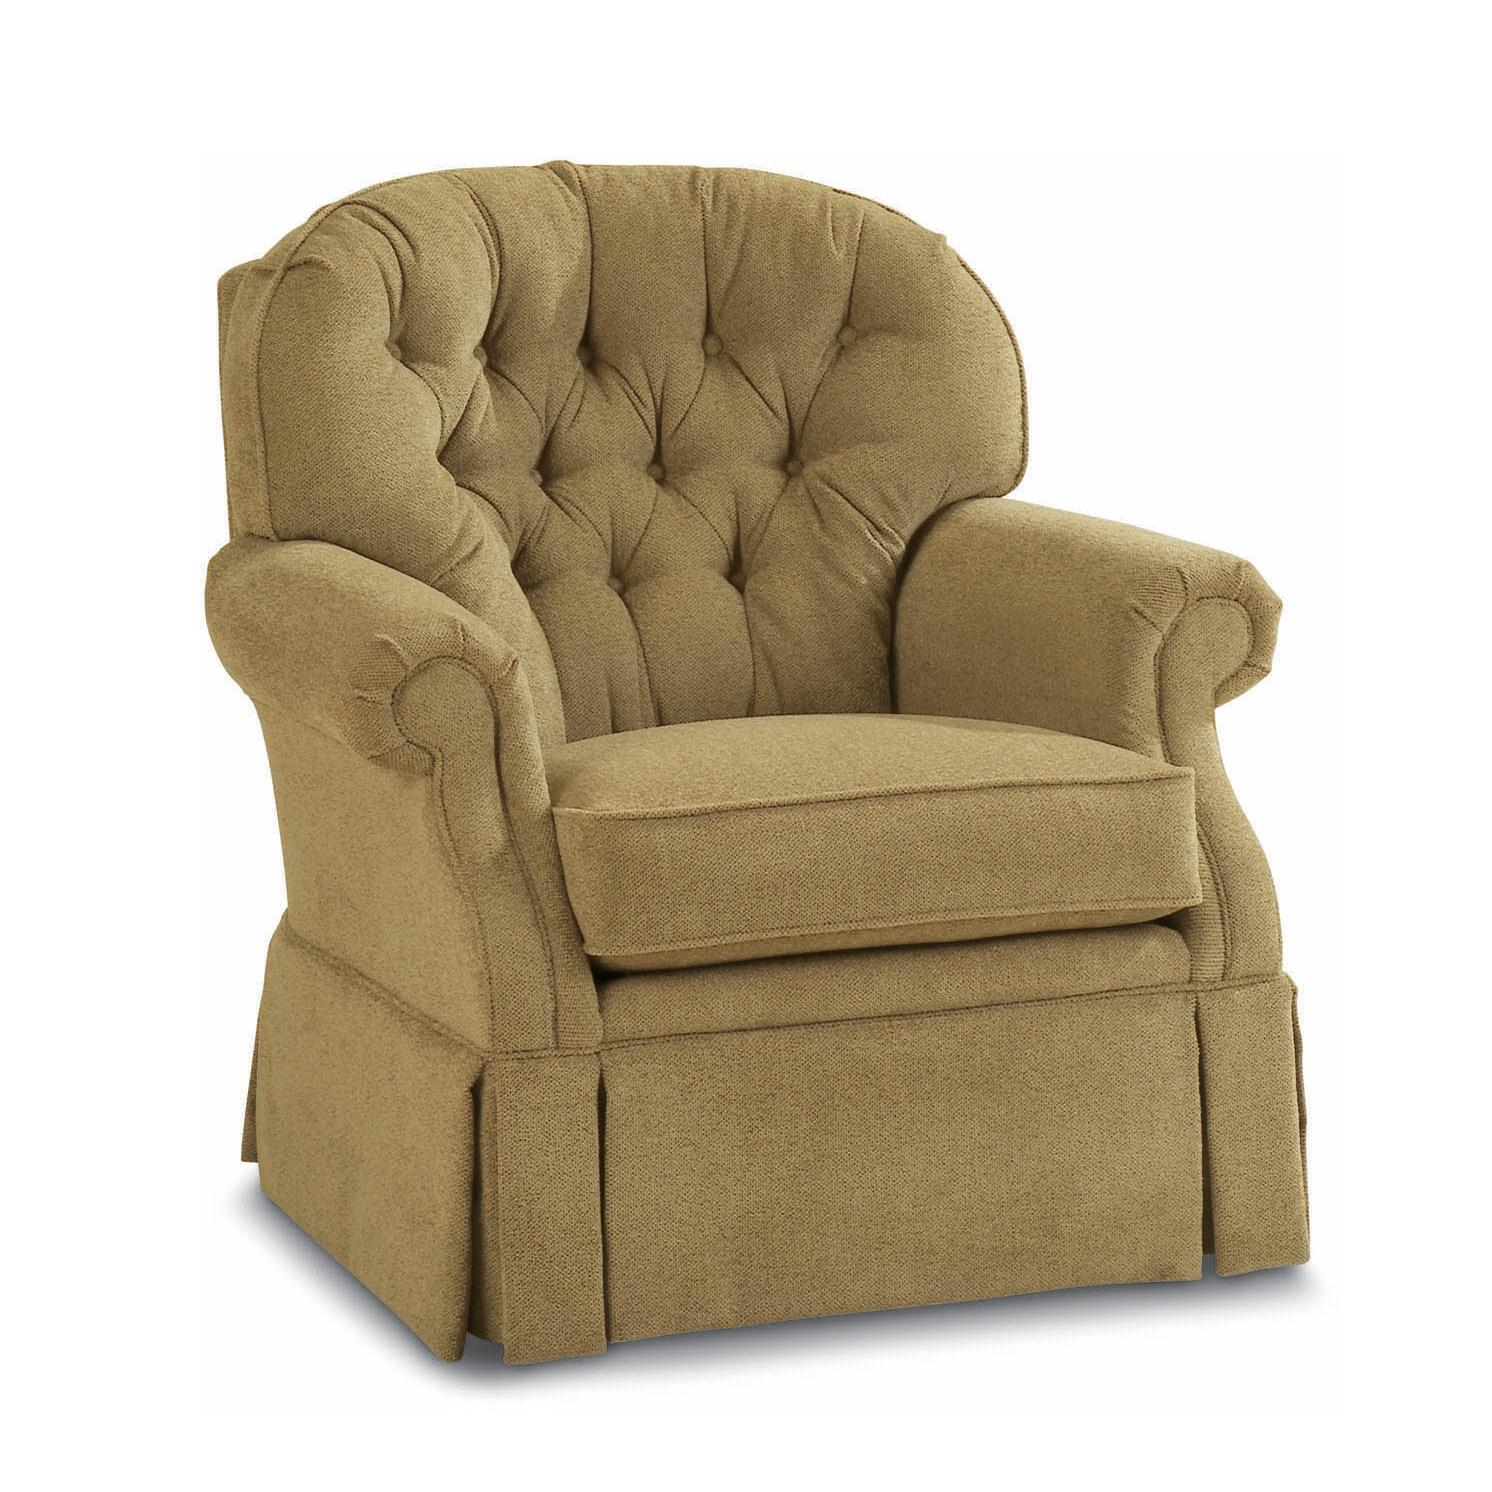 Lazy Boy Swivel Chair Traditional Swivel Rocker With Tufted Back And Kick Pleat